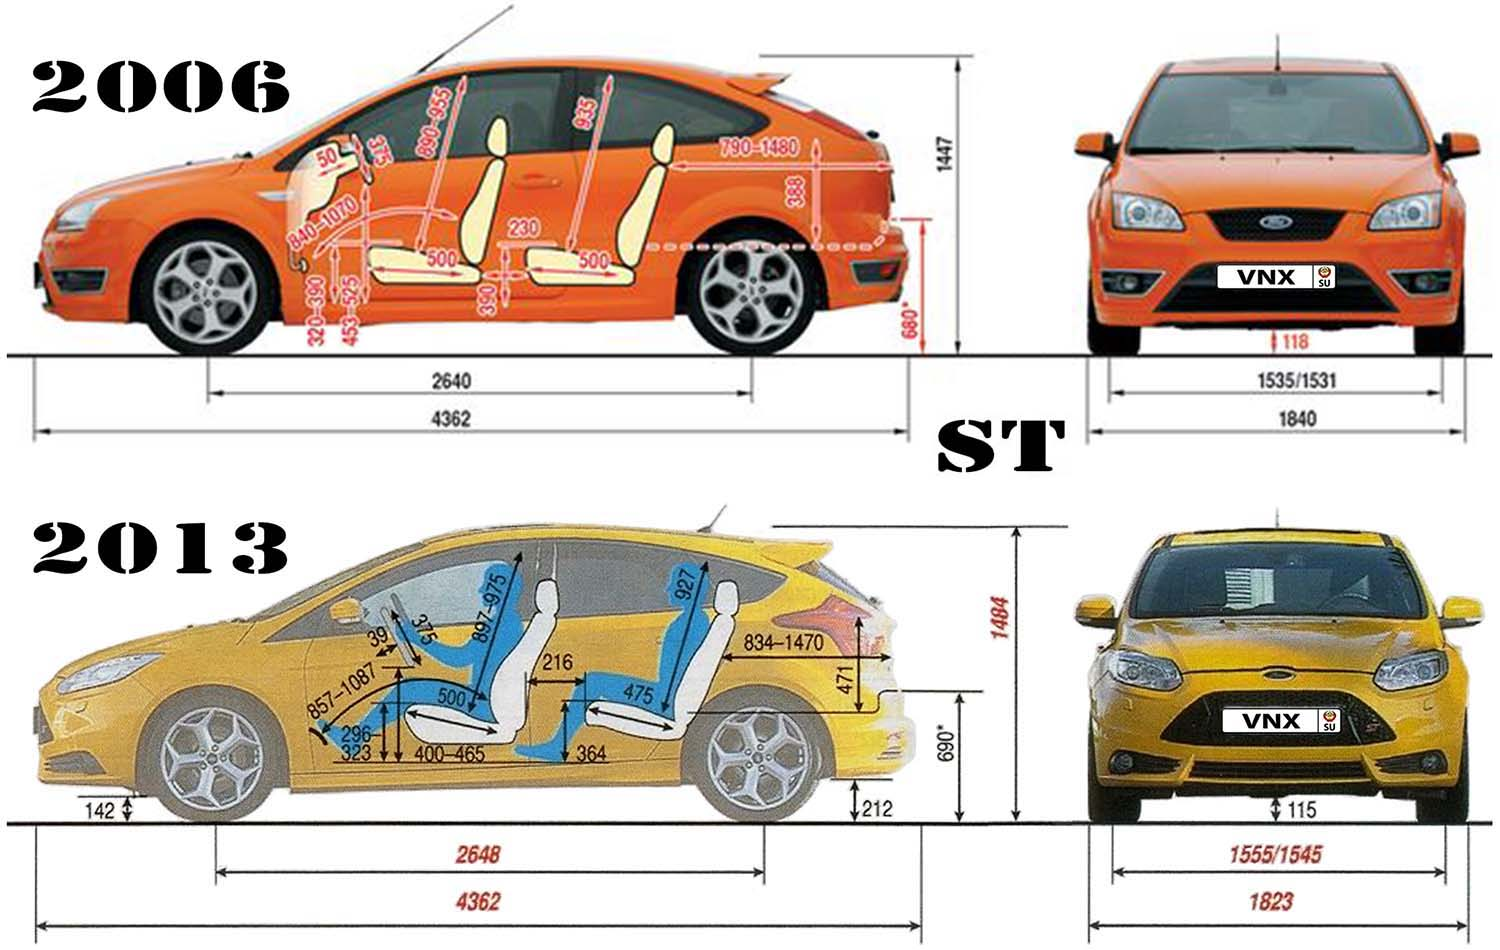 Габаритные размеры Форд Фокус СT 2006/2013 (dimensions Ford Focus ST)